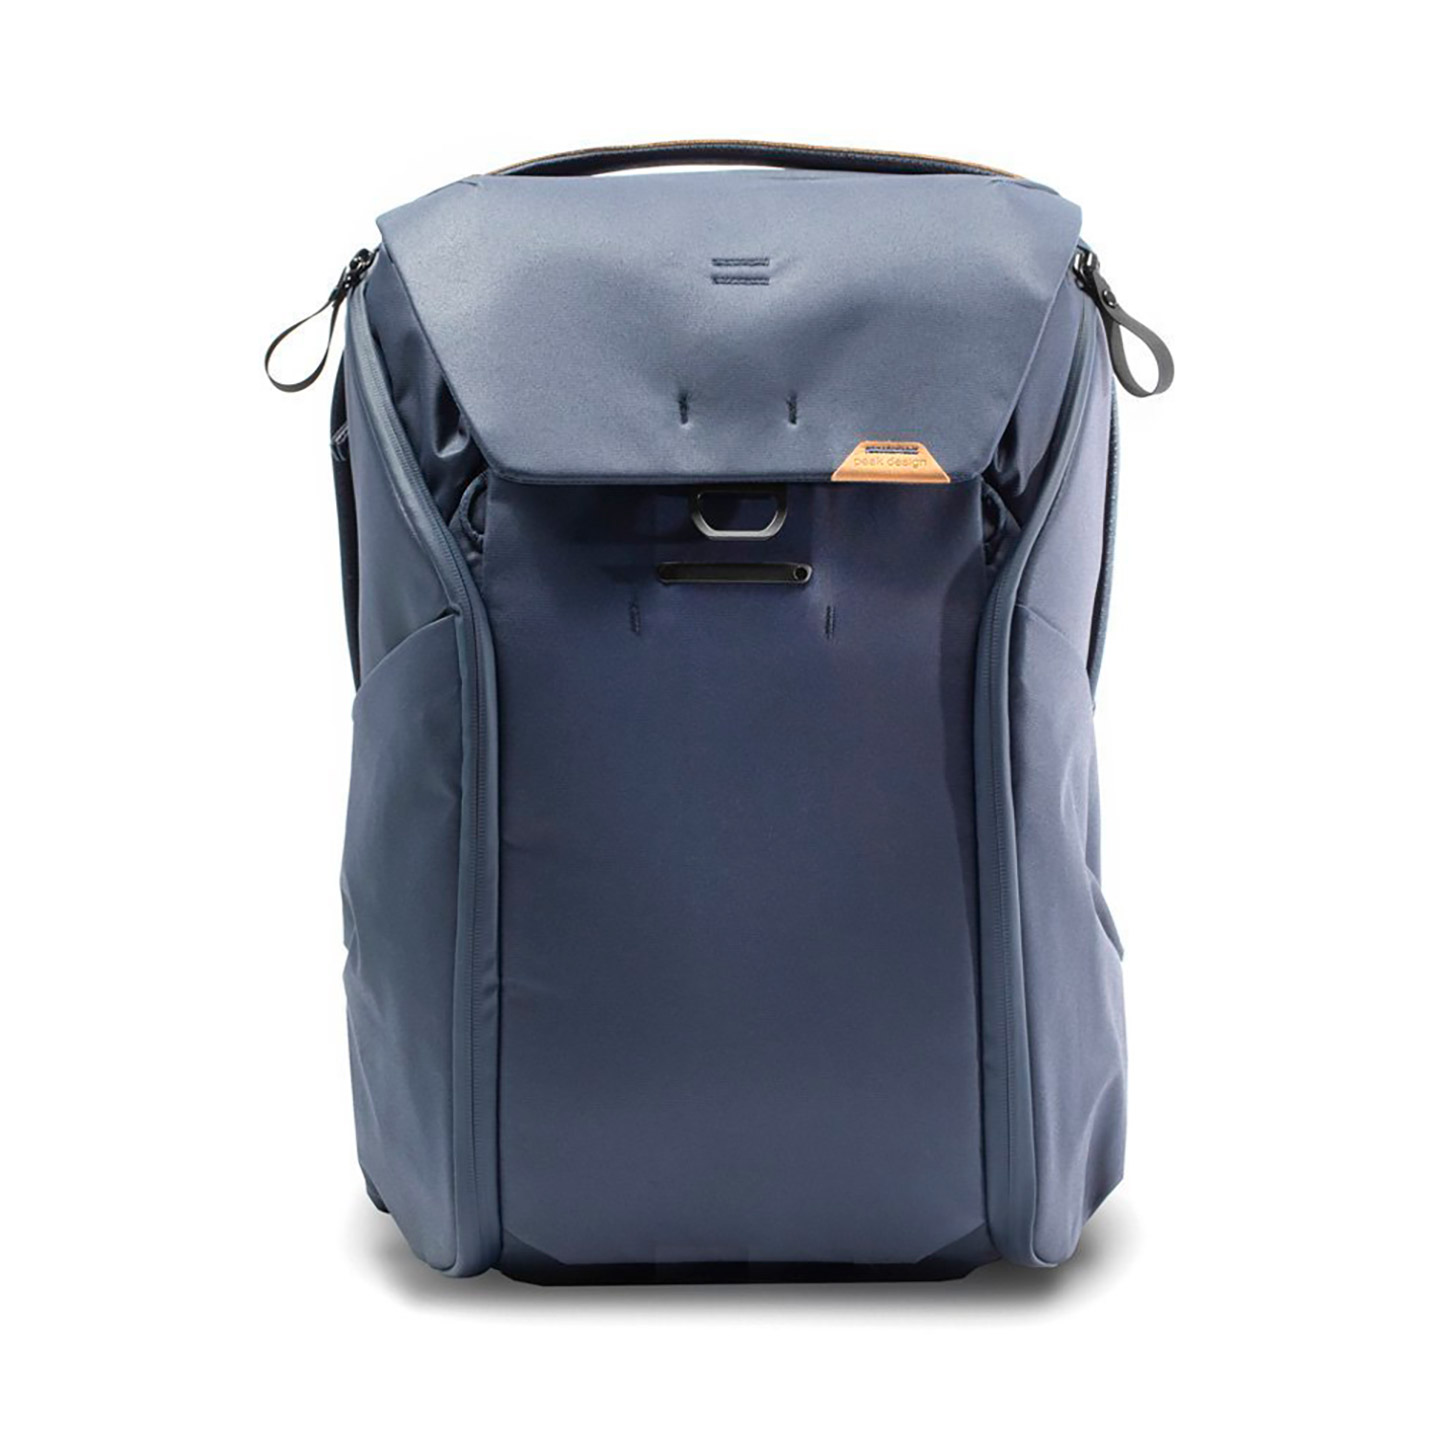 Peak Design Everyday Backpack V2 30L : Blau